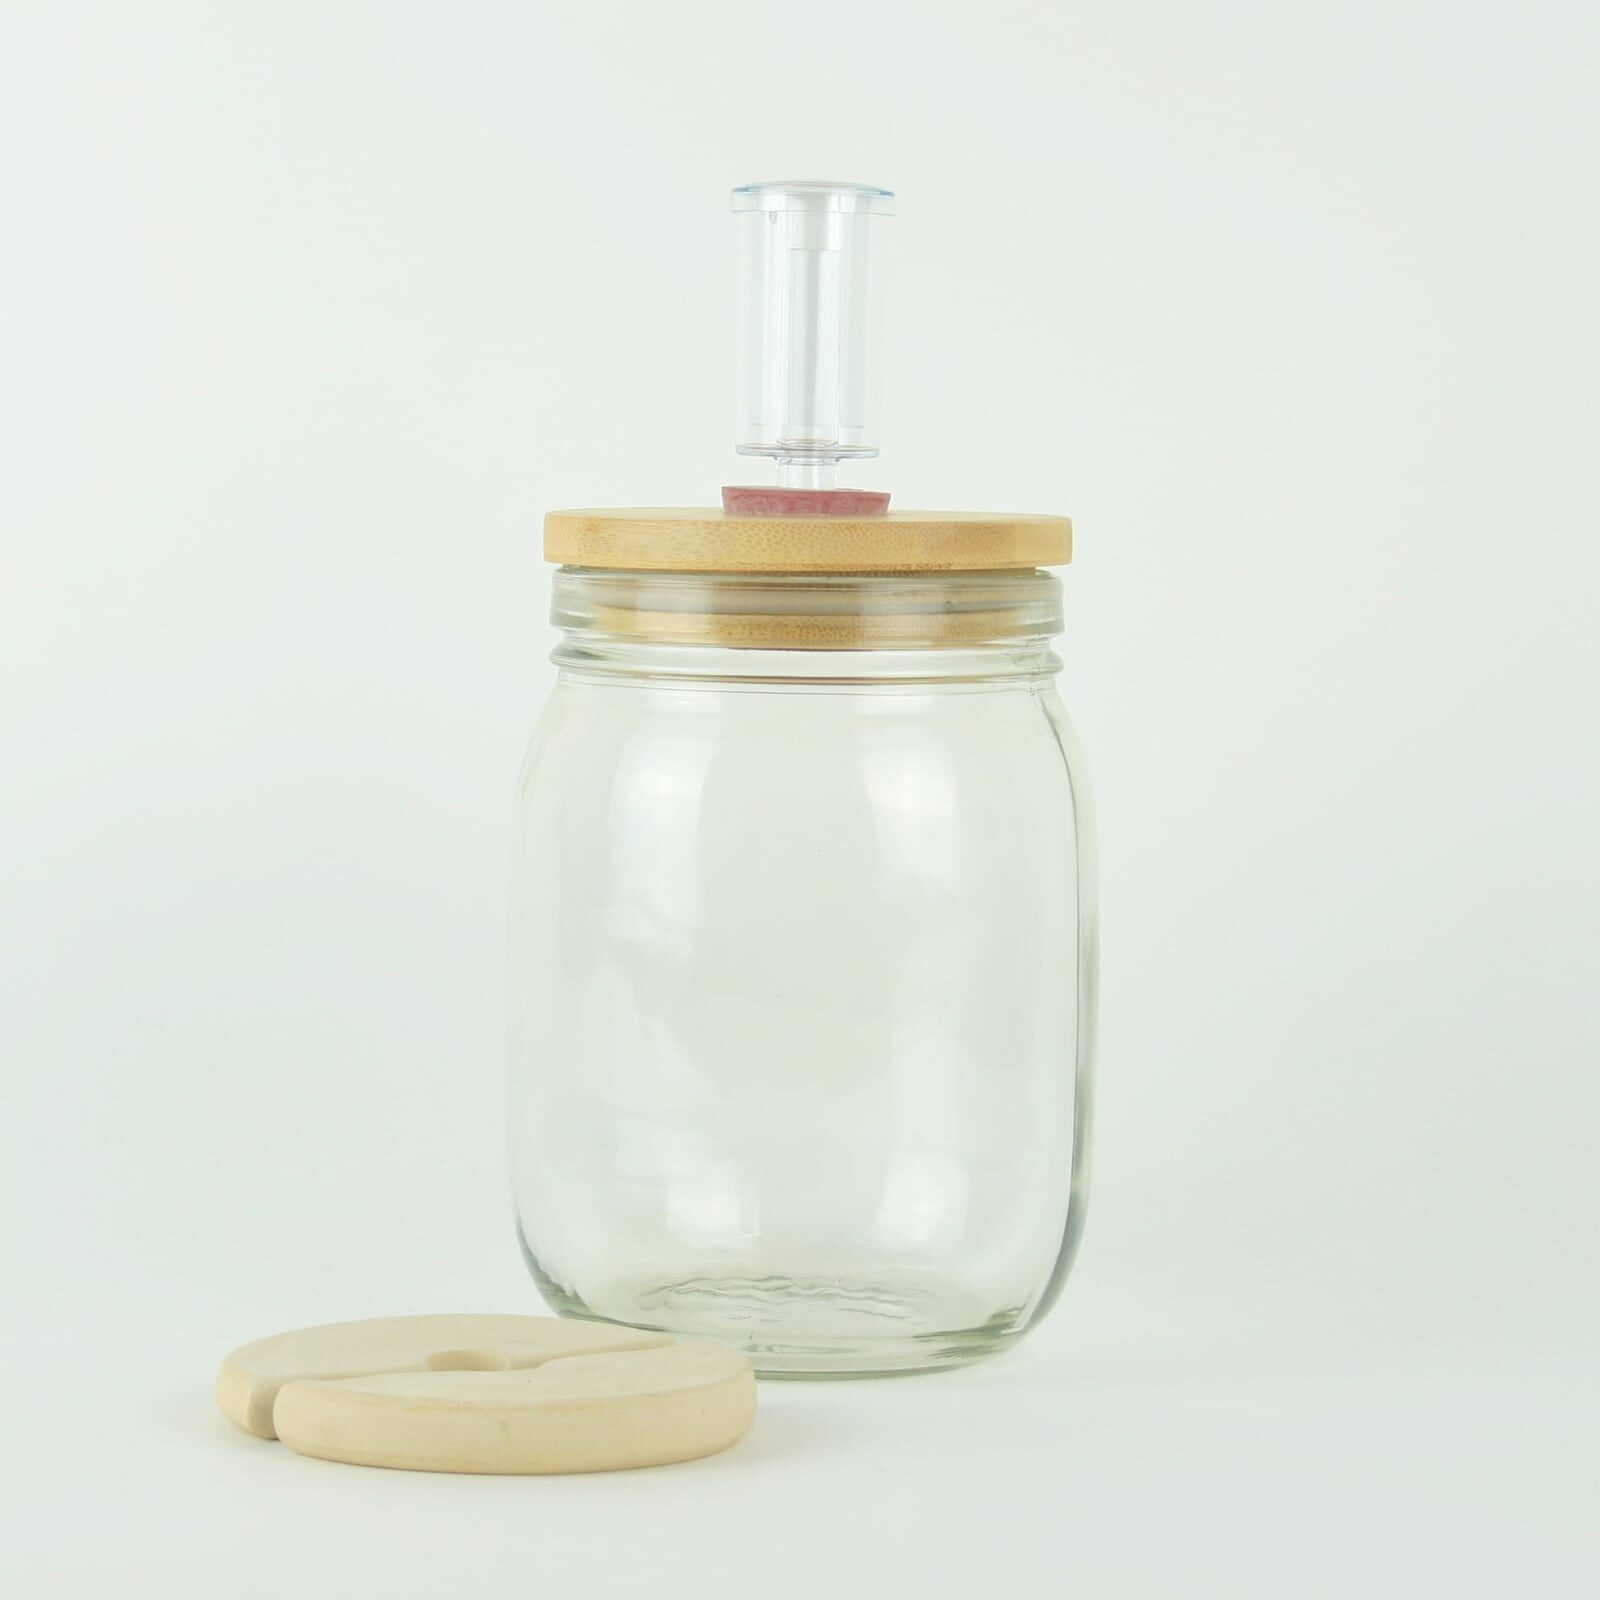 Glass fermentation jar sets with ceramic weights, wooden lids and brewing airlocks. For making sauerkraut and kimchi.